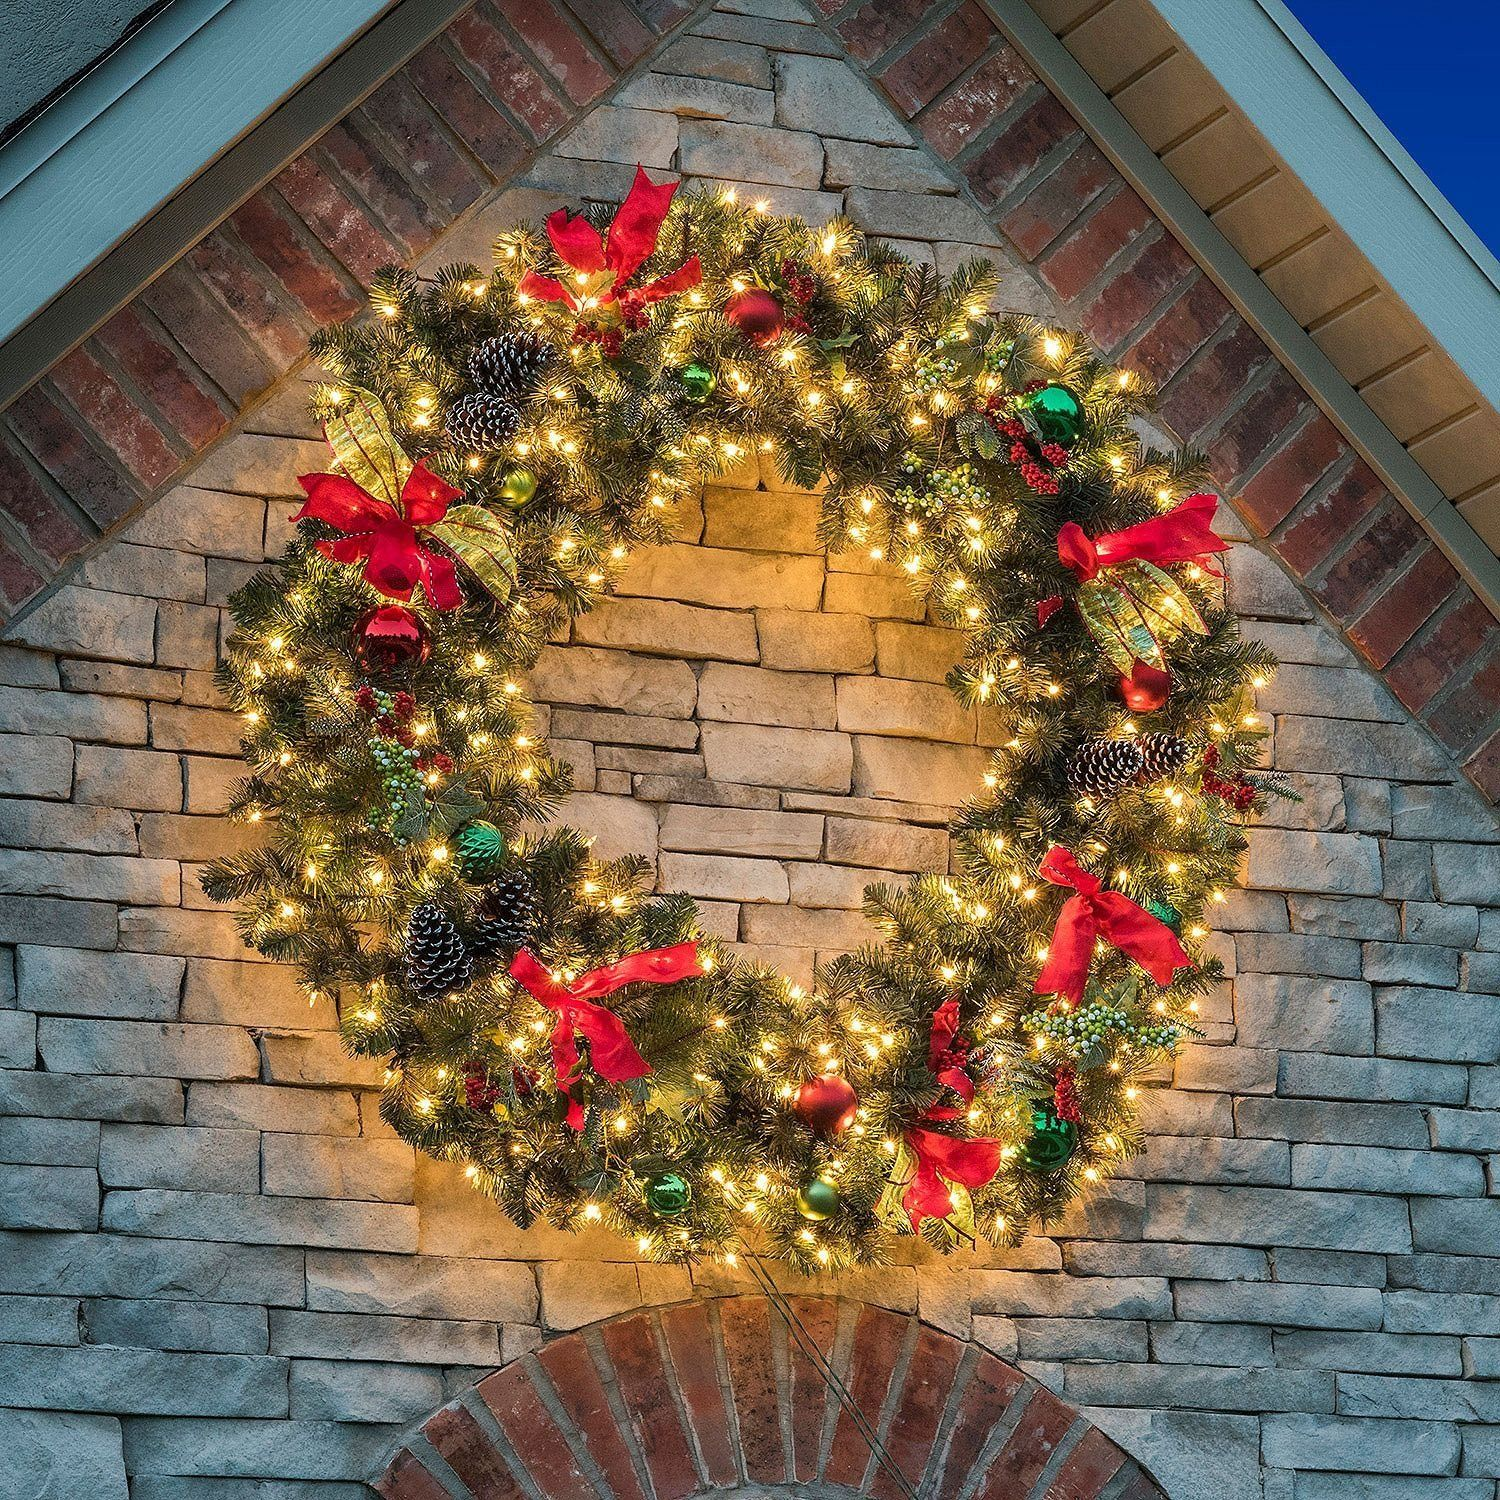 Pin By London Bridge On Christmas Large Christmas Wreath Outdoor Christmas Wreaths Christmas Wreaths With Lights